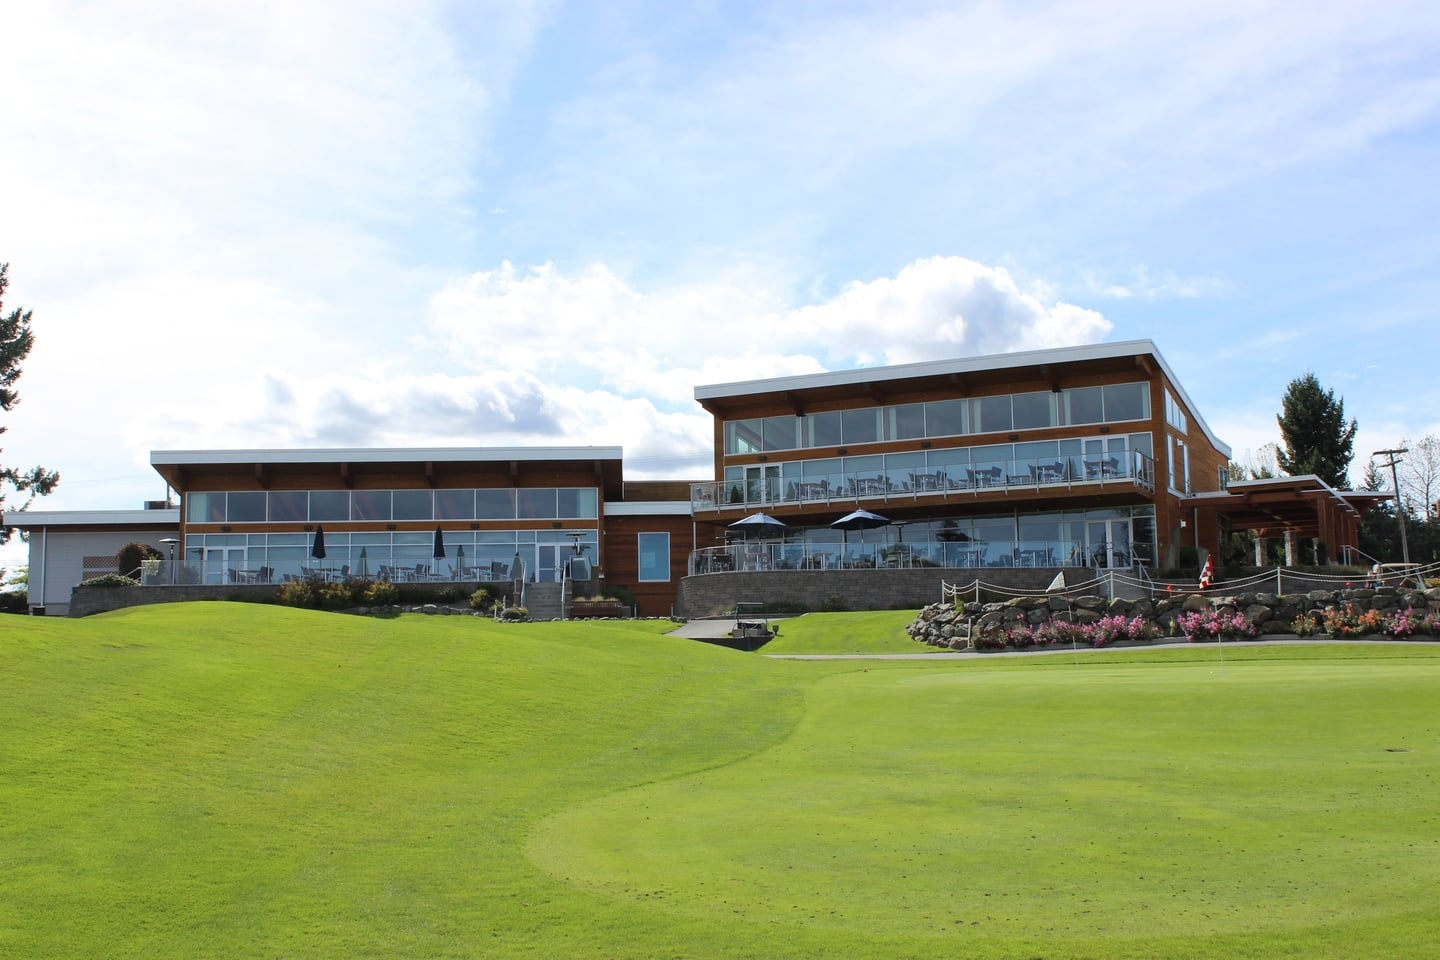 Nanaimo golf clubhouse overlooking green